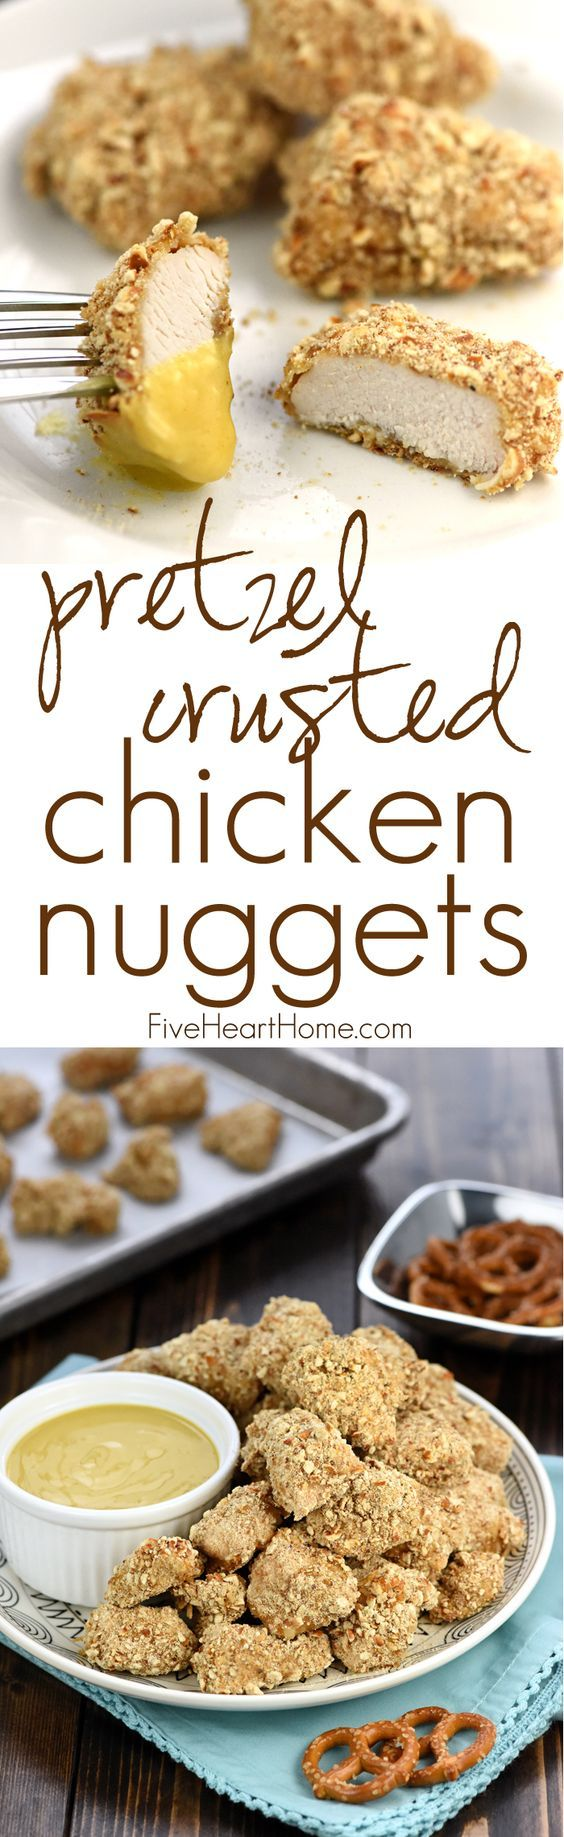 Pretzel-Crusted Chicken Nuggets with Honey Mustard Dipping Sauce ~ tender, juicy nuggets are baked to perfection and served with a lightened-up, Greek yogurt-based sauce for a simple, yummy, family-pleasing dinner! | FiveHeartHome.com::